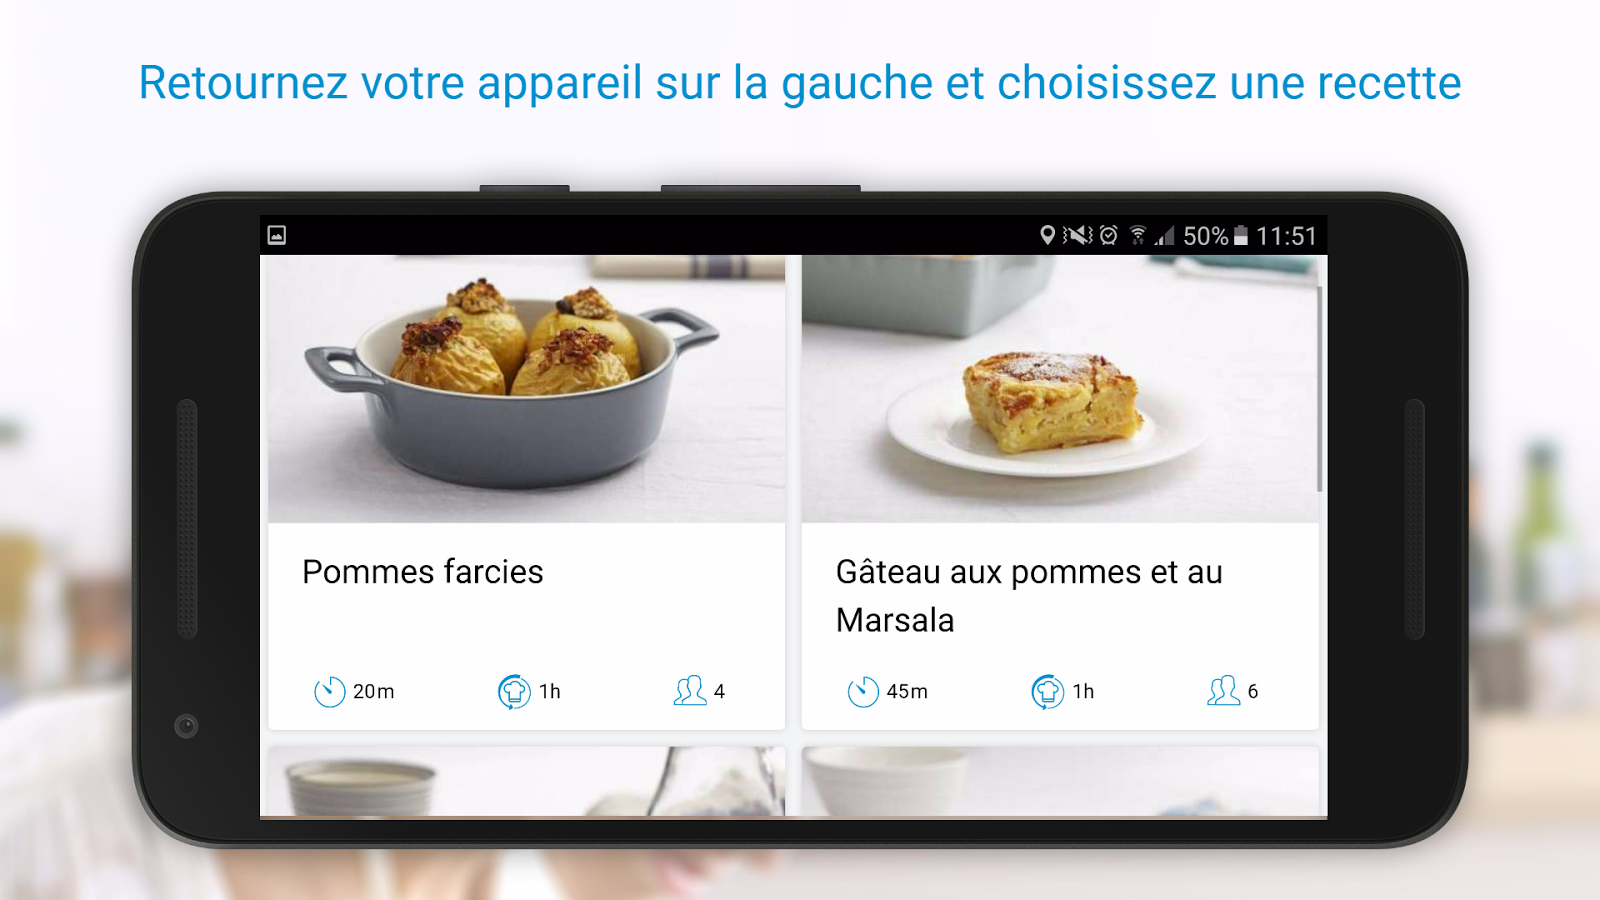 Indesit turn cook applications android sur google play - Rice cooker recettes et astuces d utilisation ...